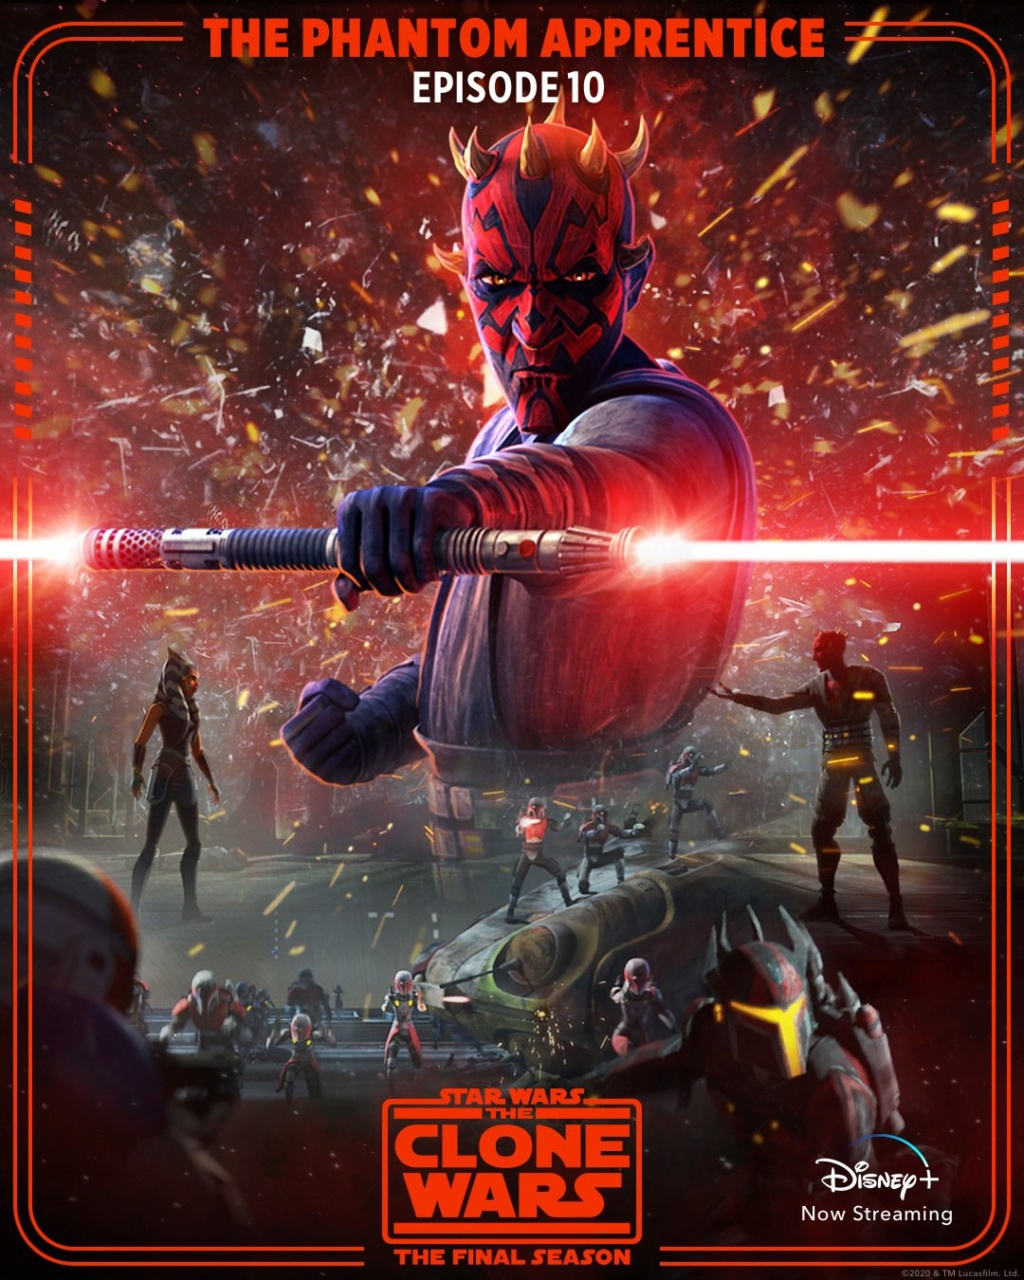 STAR WARS THE CLONE WARS - NEWS - NOUVELLE SAISON - DVD [3] - Page 6 Poster86